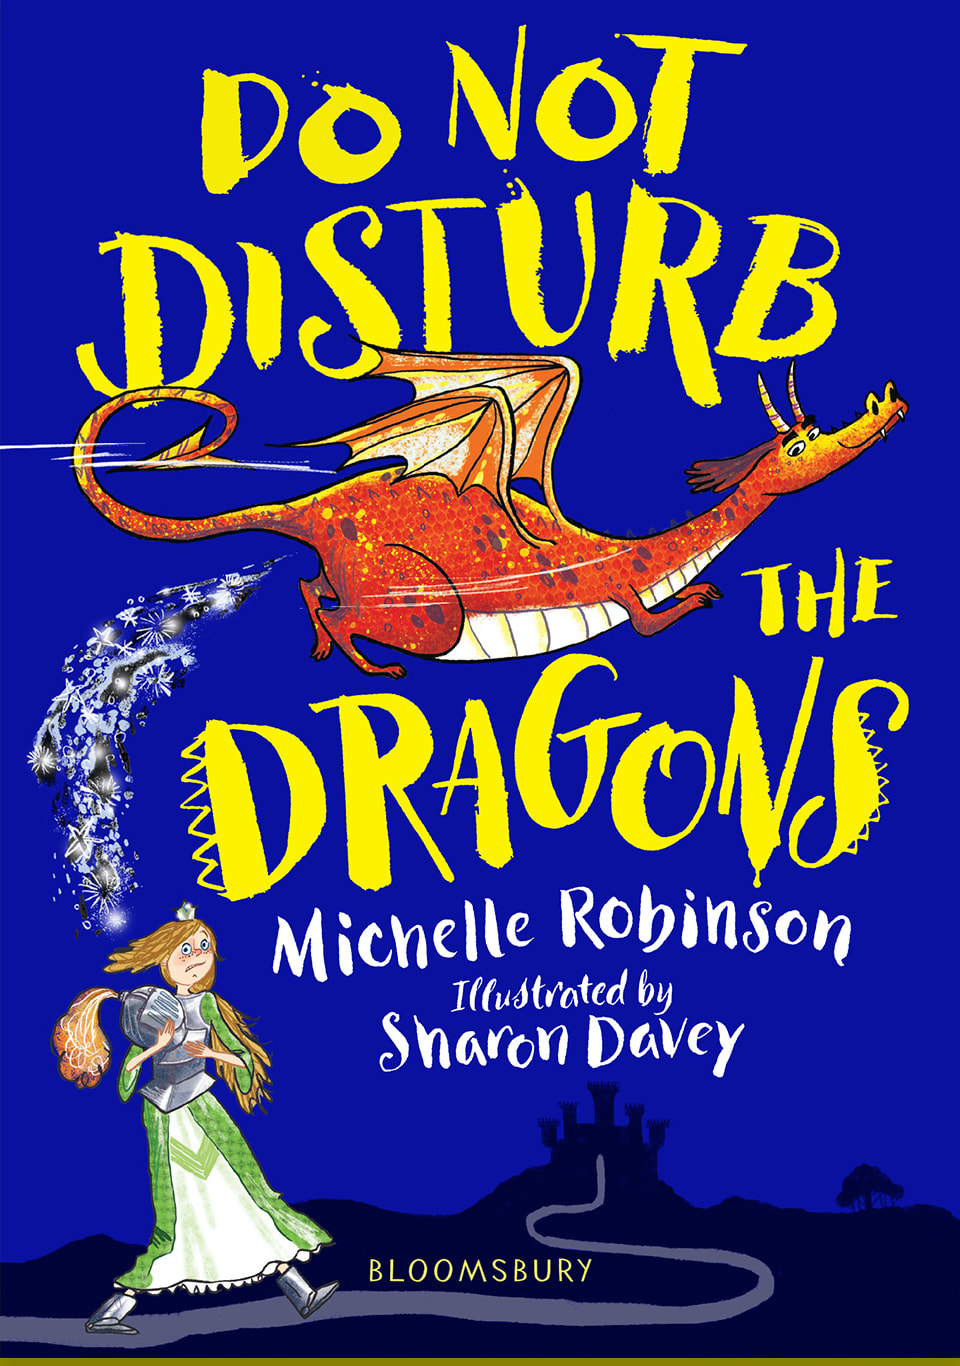 Front cover of DO NOT DISTURB THE DRAGONS. A red dragon is flying above a princess dressed in armour. The dragon is doing a glittering poo, the princess looks up, daunted. A winding path leads to a castle in the background.